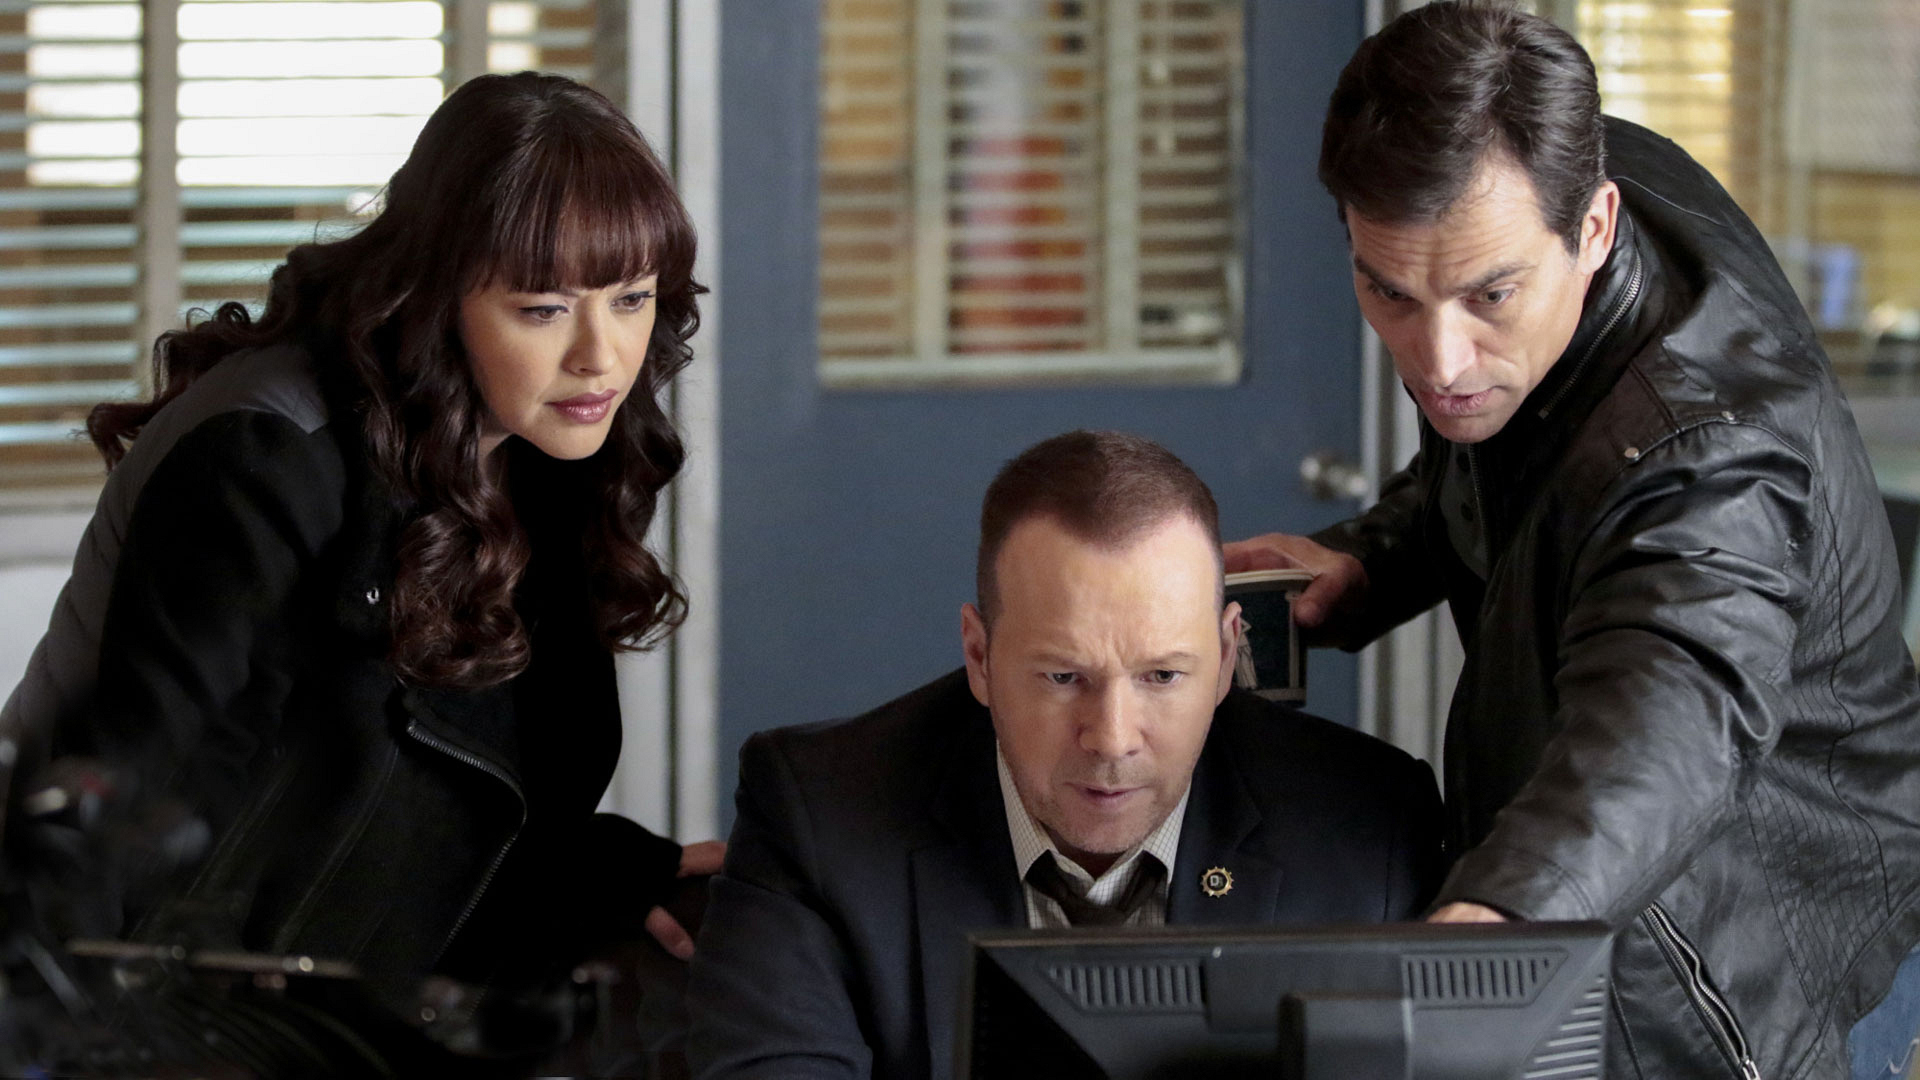 Marisa Ramirez as Detective Maria Baez, Donnie Wahlberg as Detective Danny Reagan, and Johnathon Schaech as Detective Jimmy Mosley